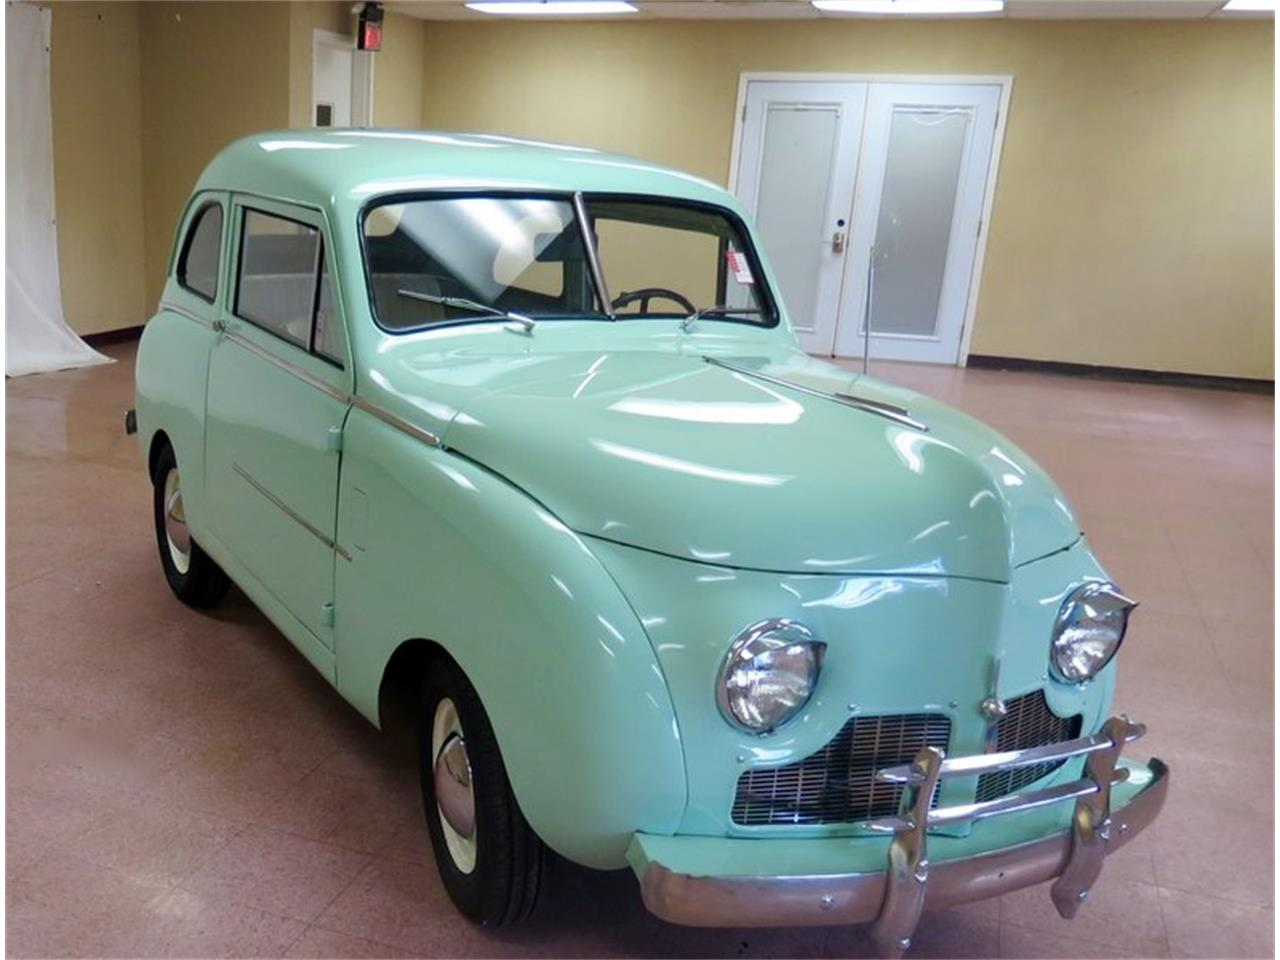 Large Picture of Classic '47 Crosley Coupe - $12,000.00 - FHX5